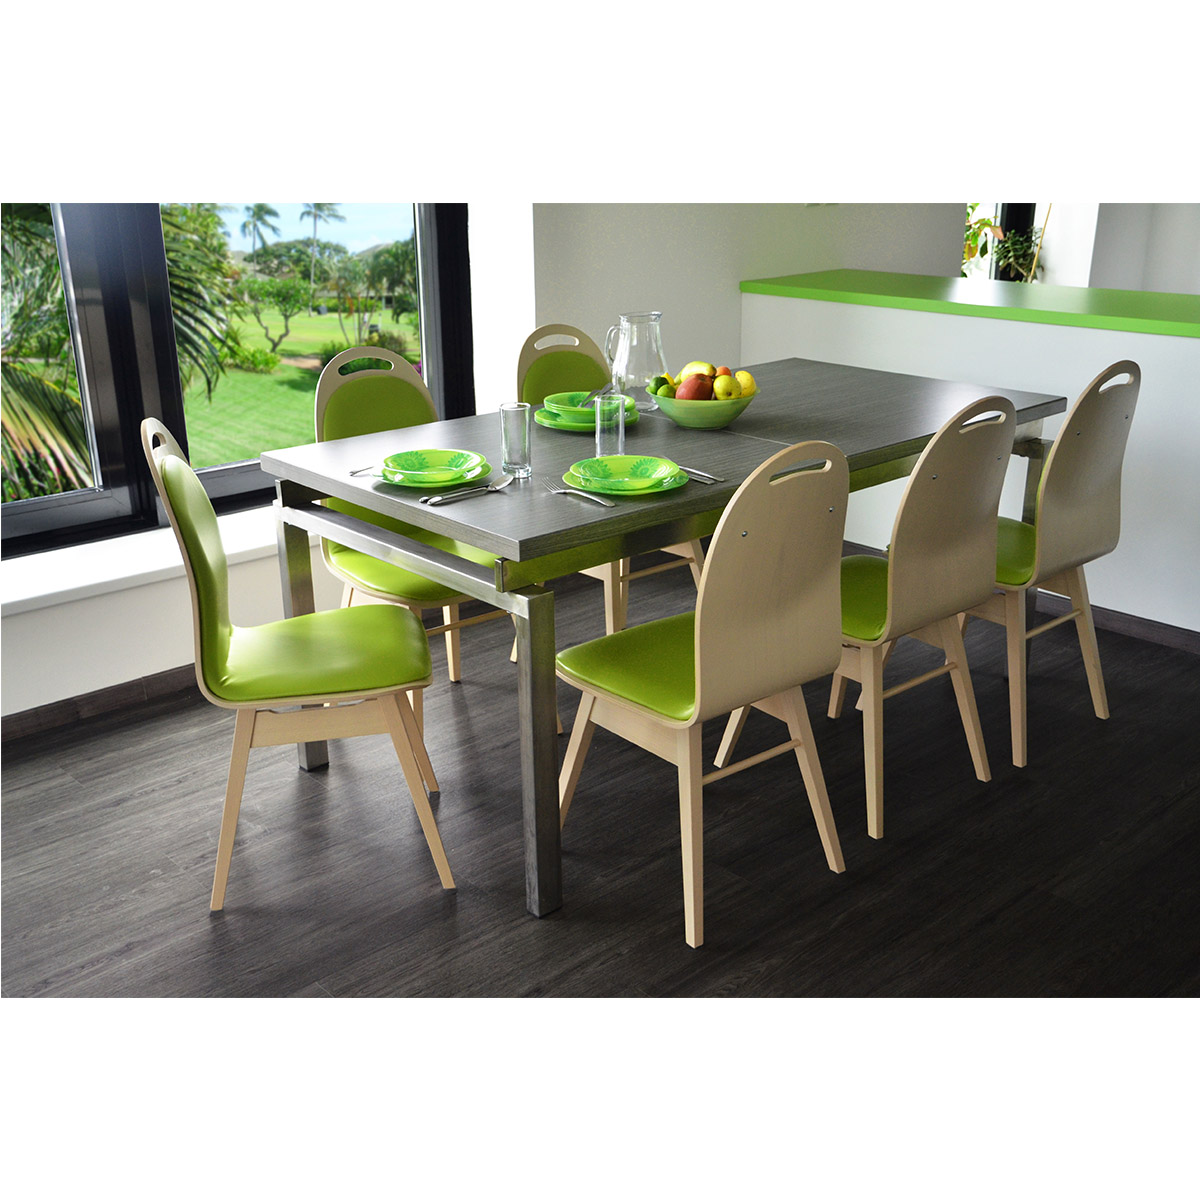 Orlando T152 is elegant dining table with fixed or stretchable option.